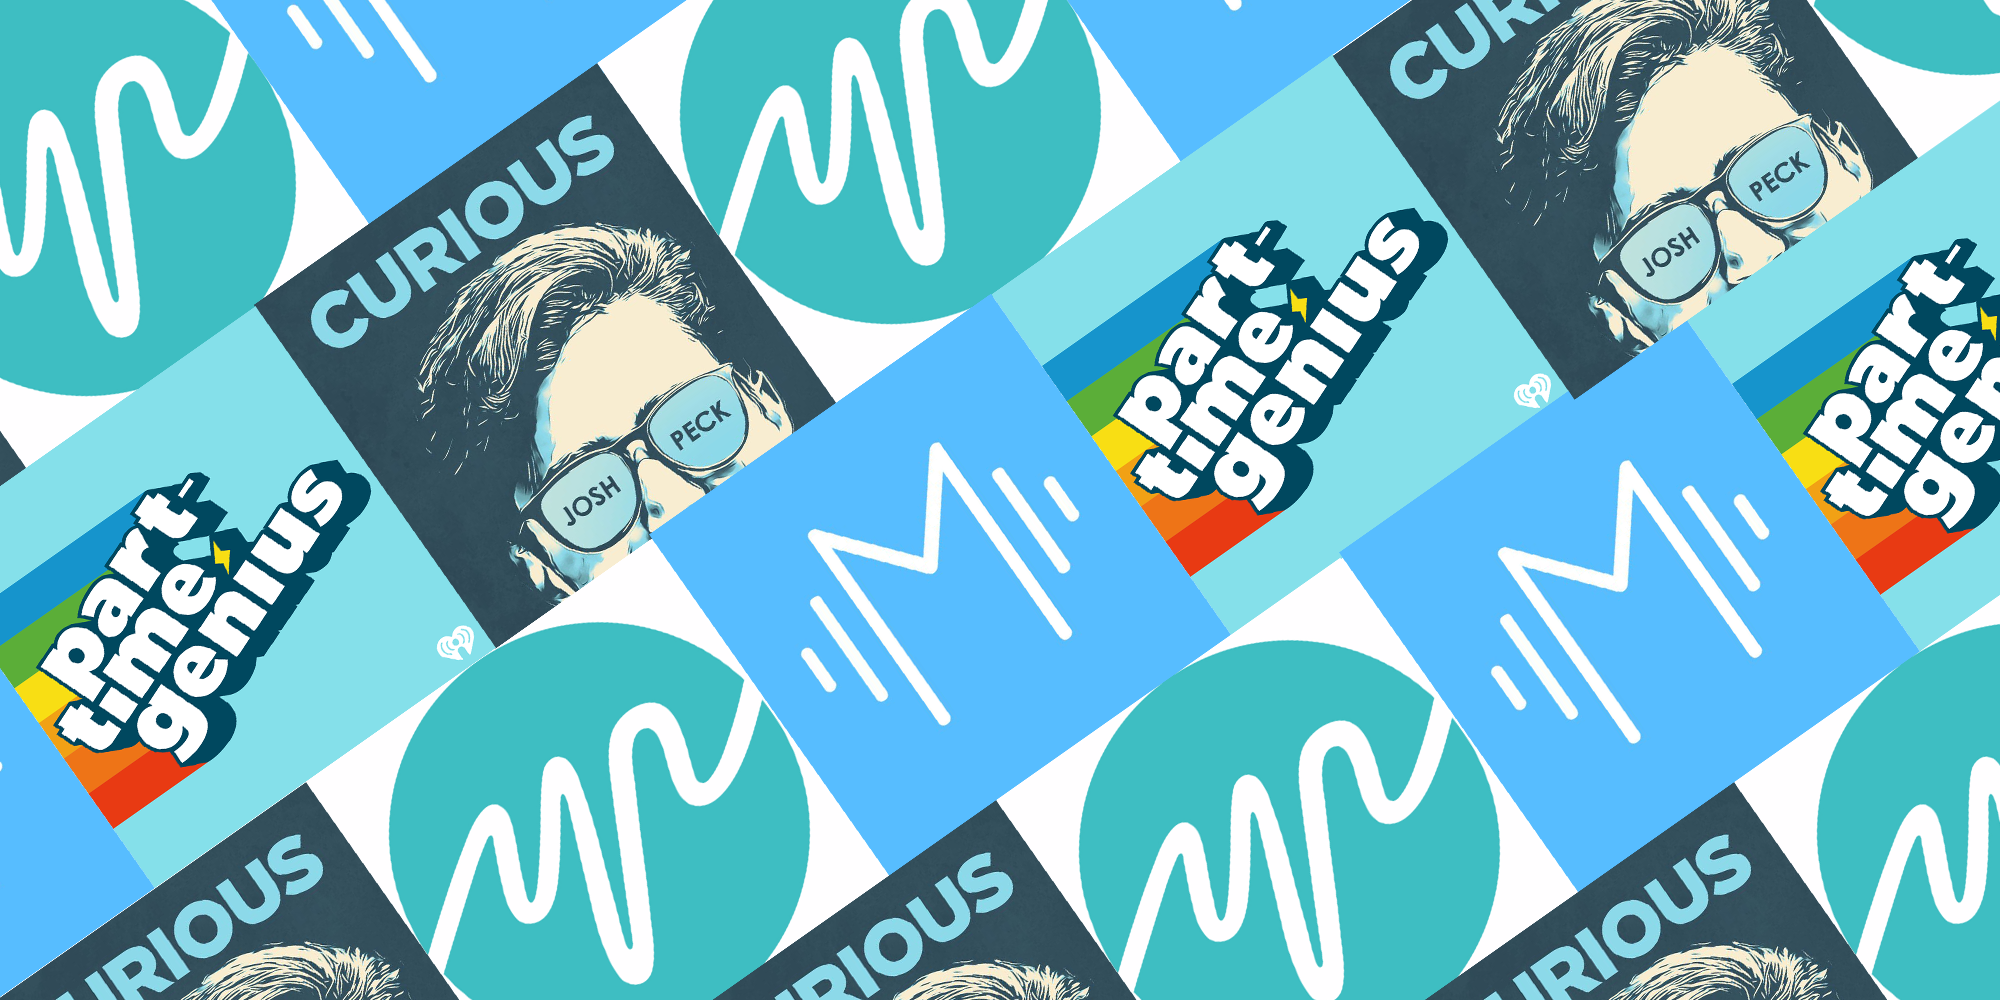 20 Best Podcasts For Teens Must Listen Teen And Tween Podcasts Drew, tom segura & christina pazsitzky on your mom's house podcast. 20 best podcasts for teens must